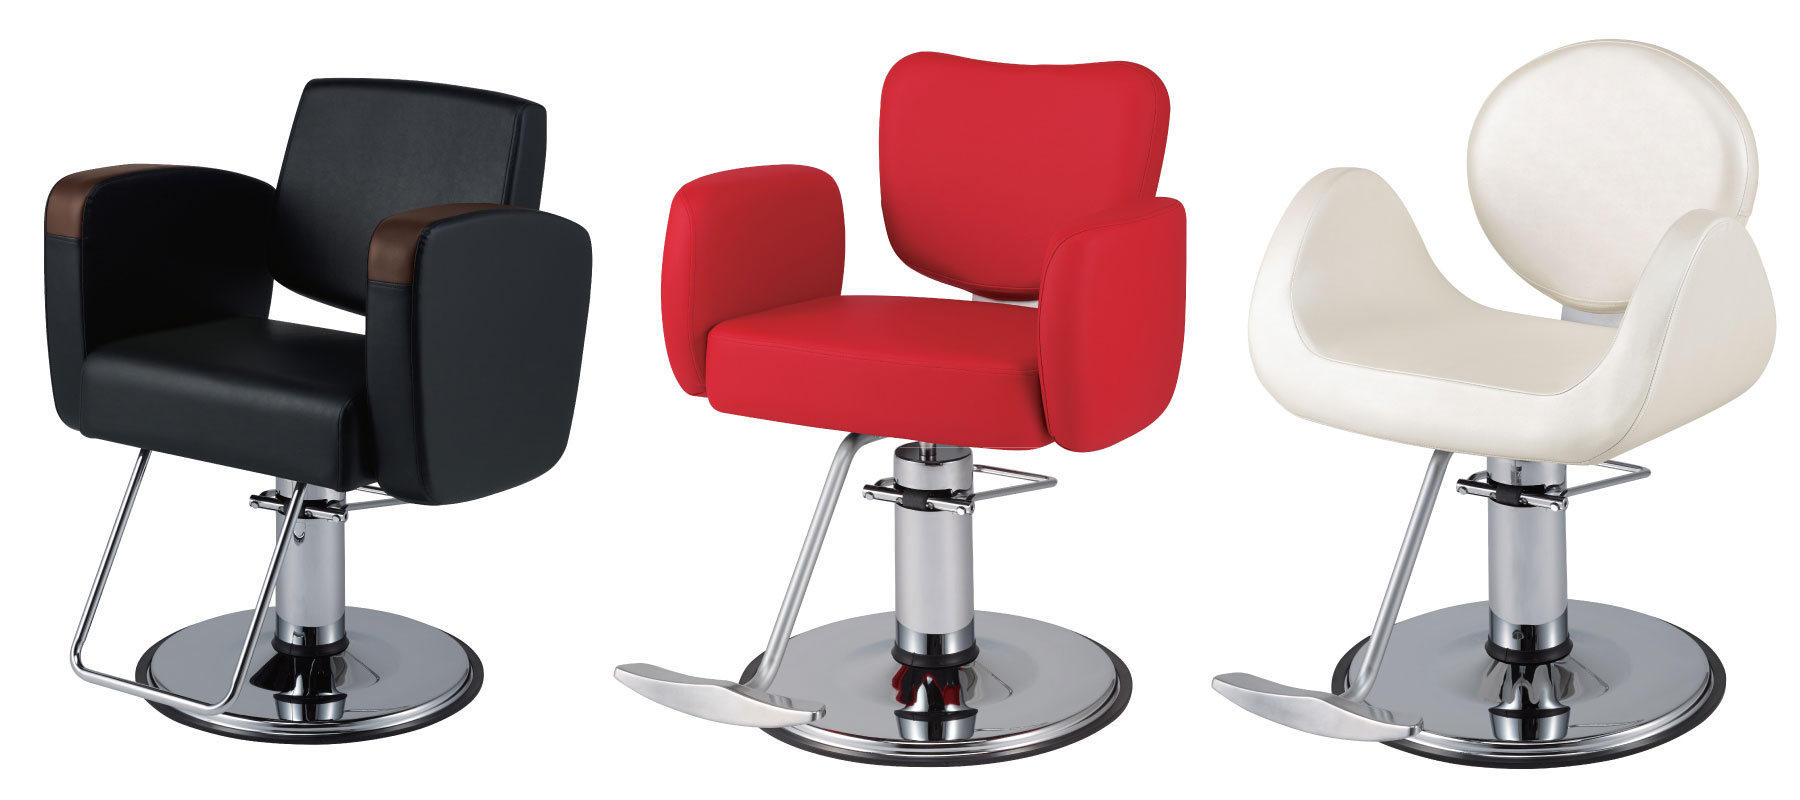 From left to right: the Takara Belmont Virtus styling chair, Bellus styling chair and Novo styling chair.